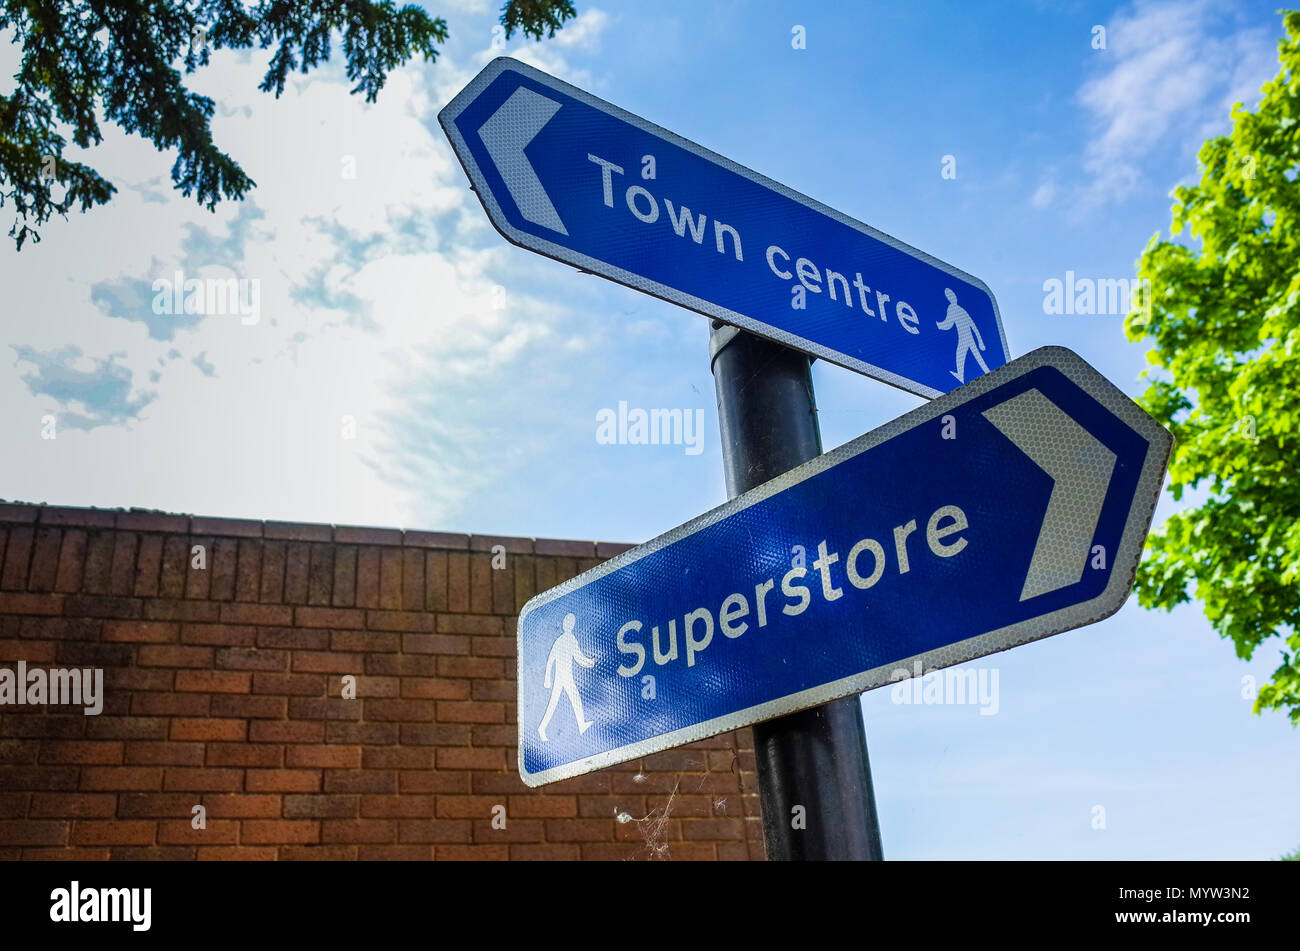 Town Centre vs Superstore - Signs pointing shoppers to the Town Centre shopping or a nearby Superstore - Out of Town Shopping vs Town Centre - Stock Image